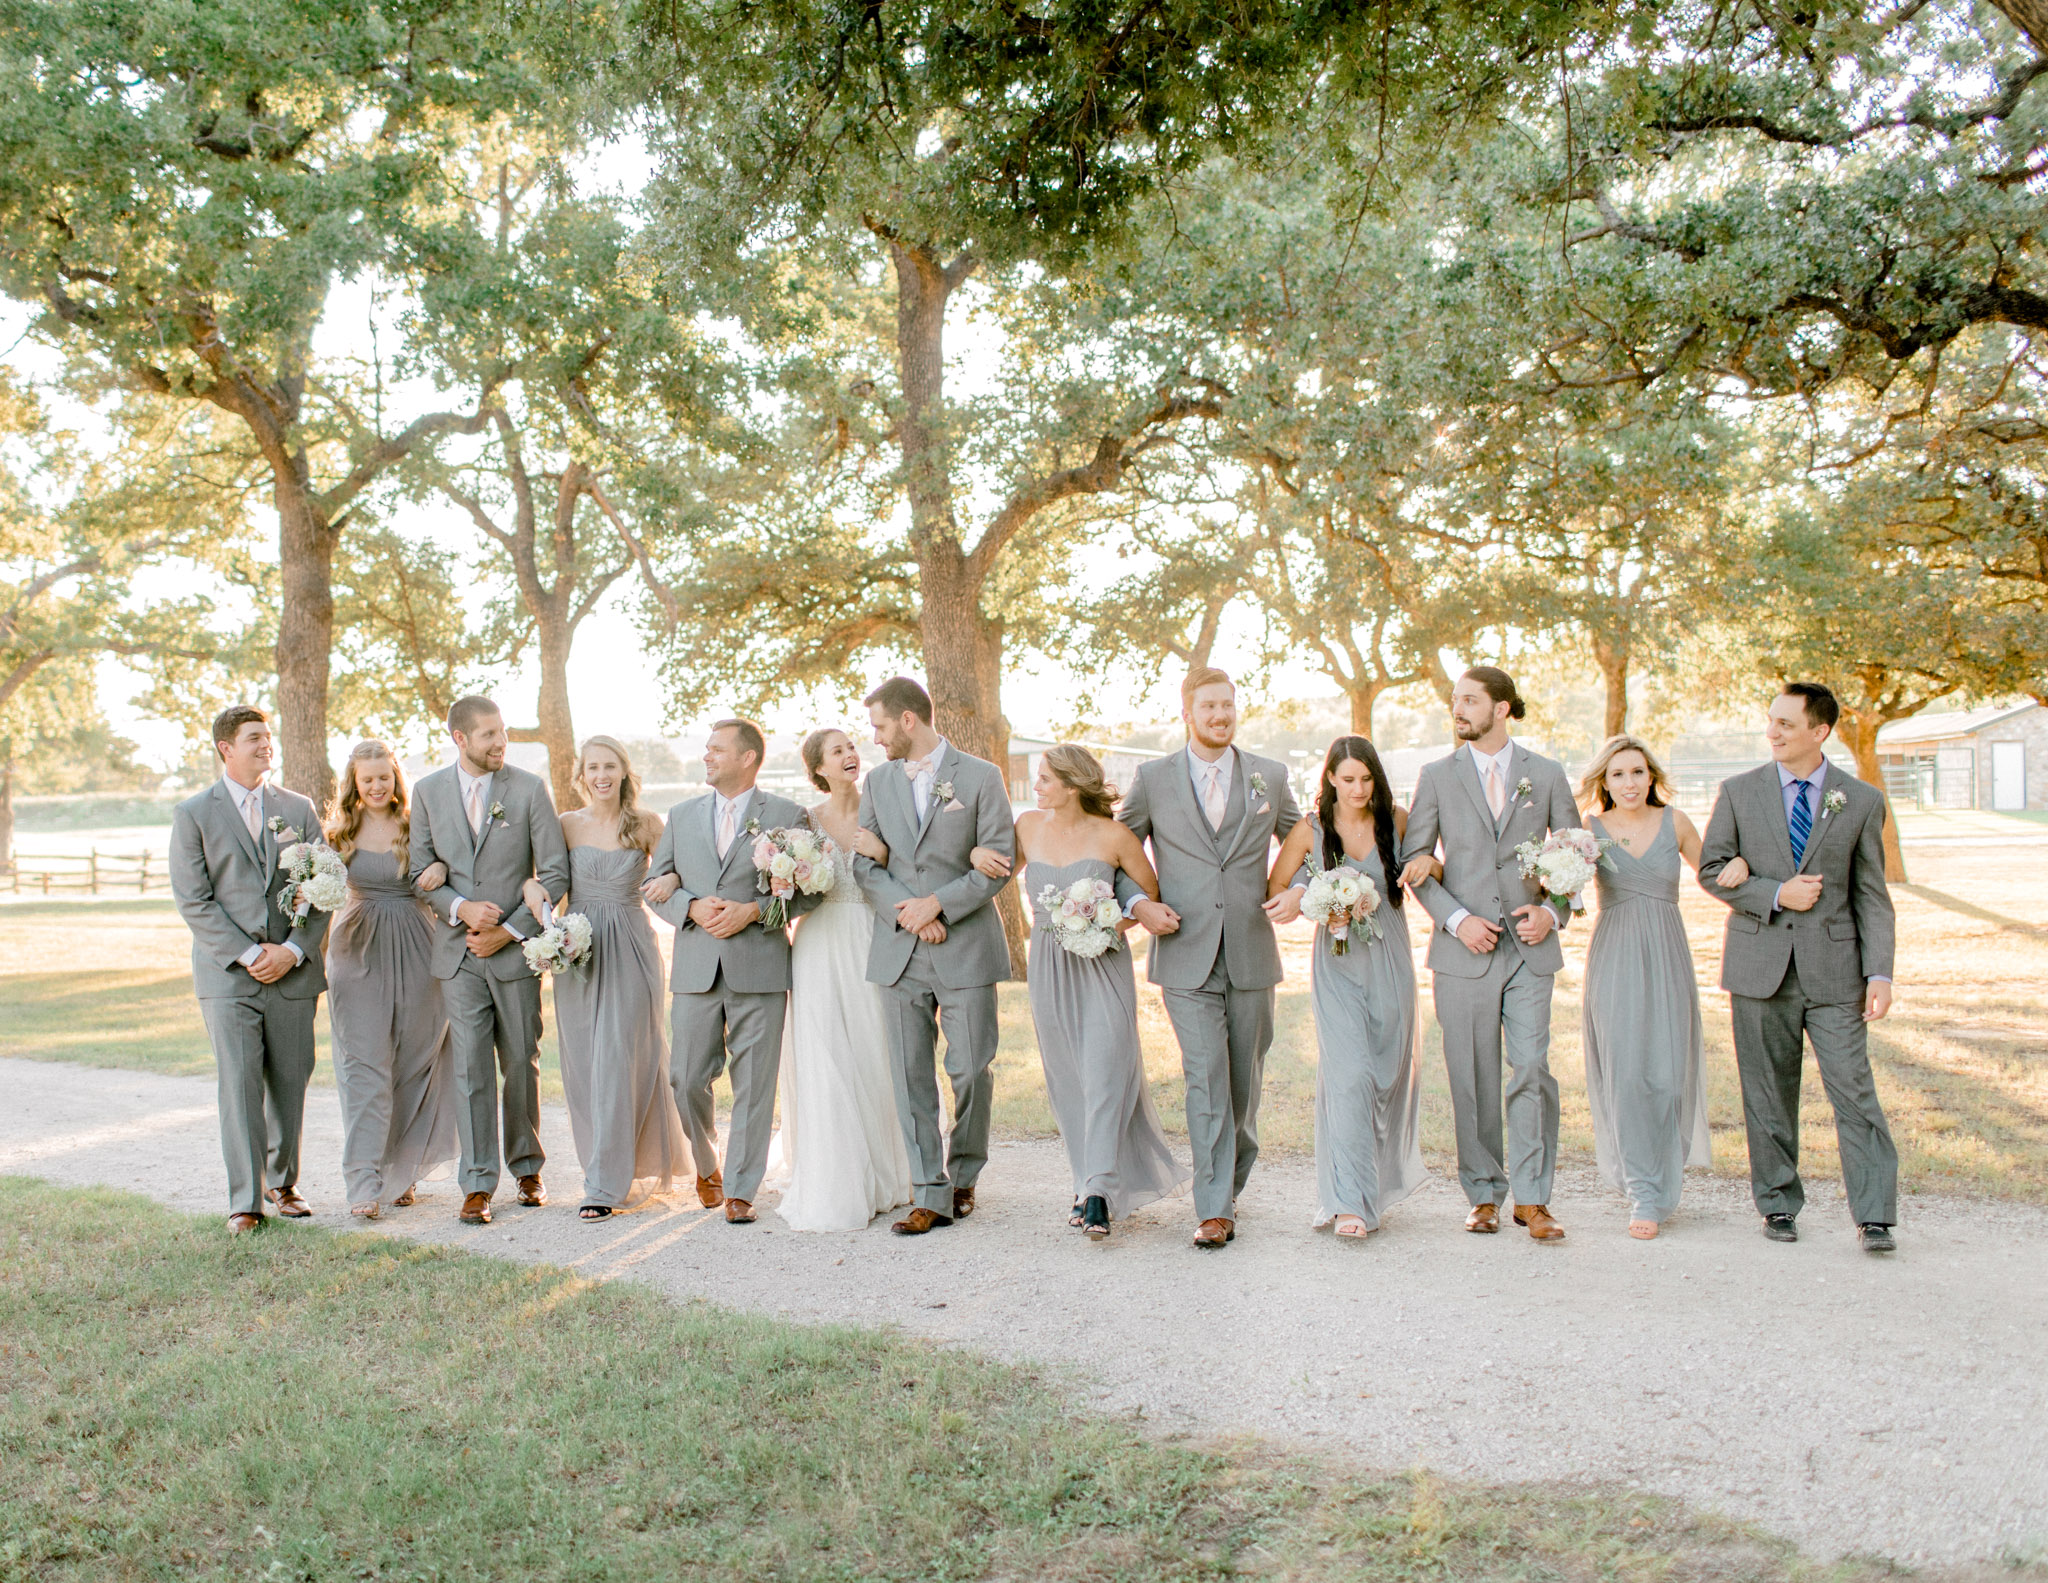 Wichita Falls, TX - Timeless Wedding Photography